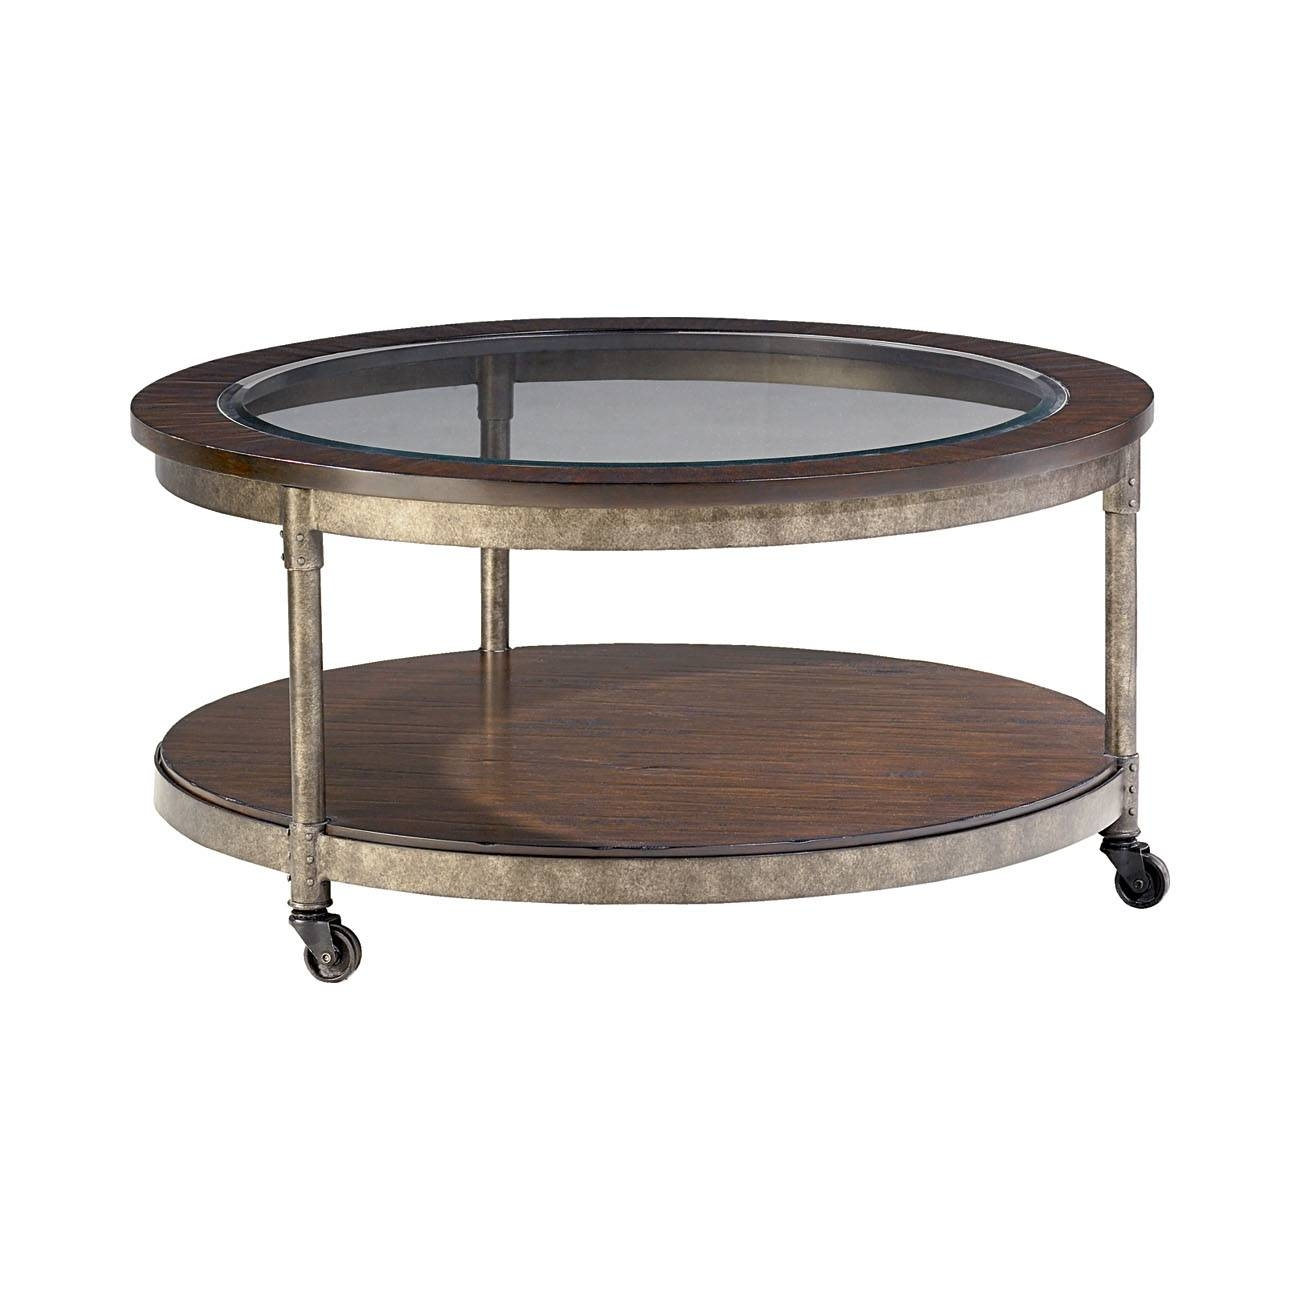 Hammary Structure Round 2 Piece Coffee Table Set - Beyond Stores for 2 Piece Coffee Table Sets (Image 25 of 30)